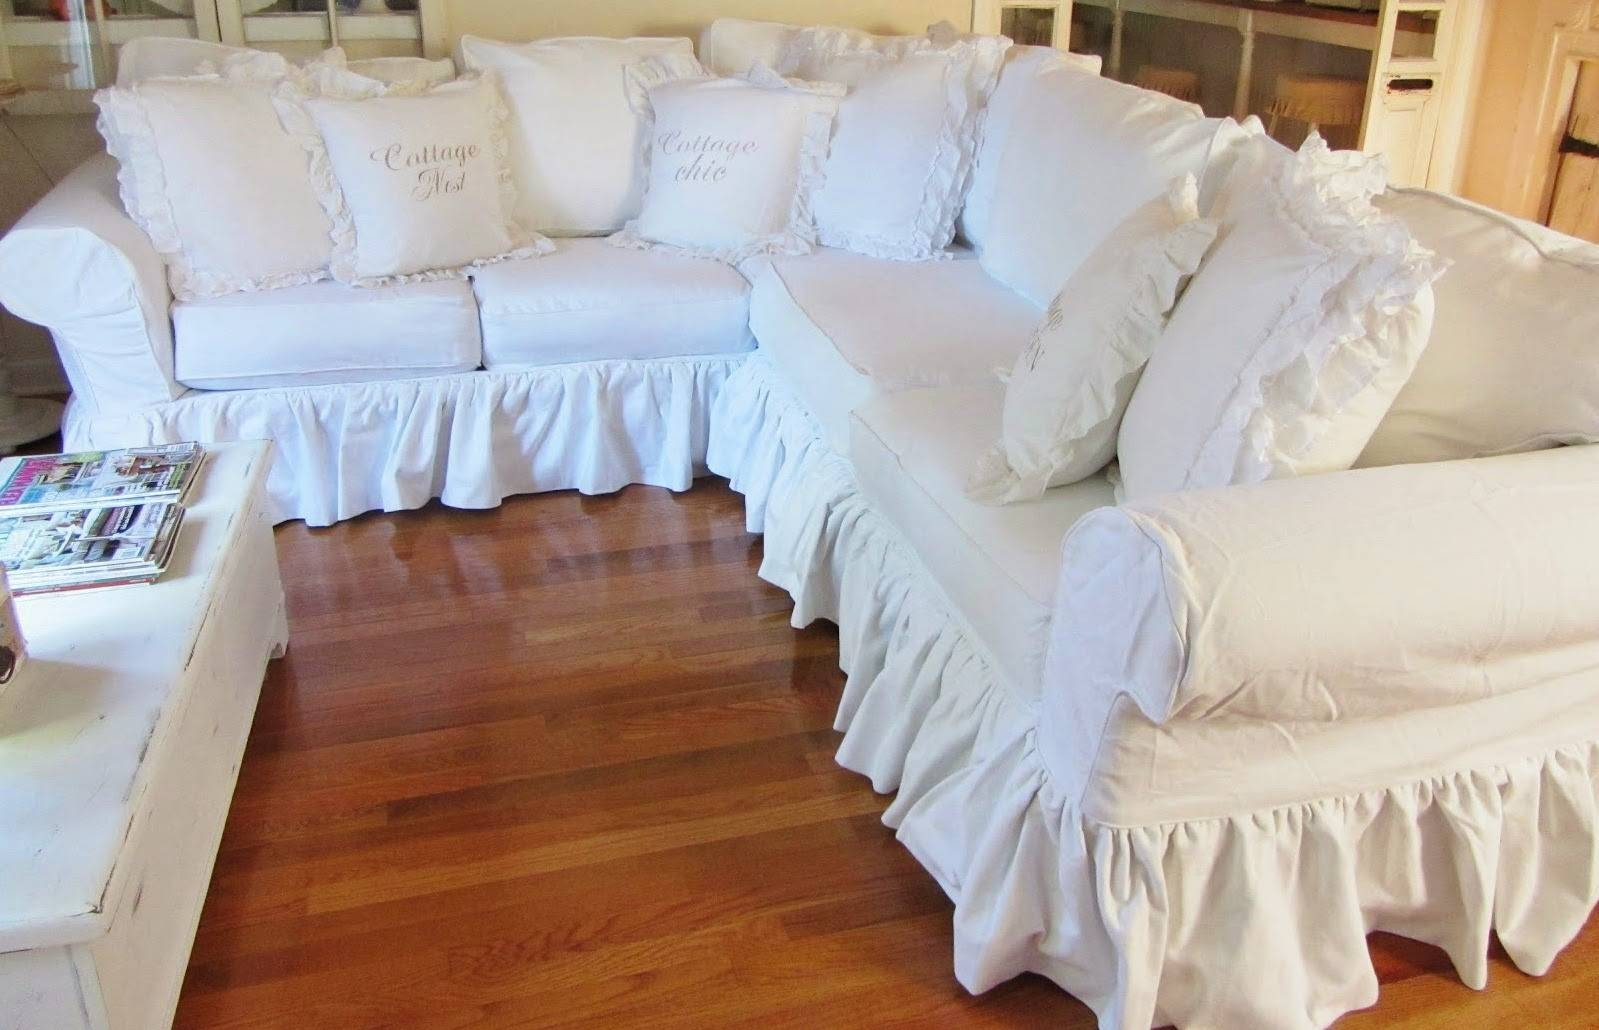 Junk Chic Cottage: White Sectional Sofa For Sale within White Sectional Sofa for Sale (Image 15 of 30)